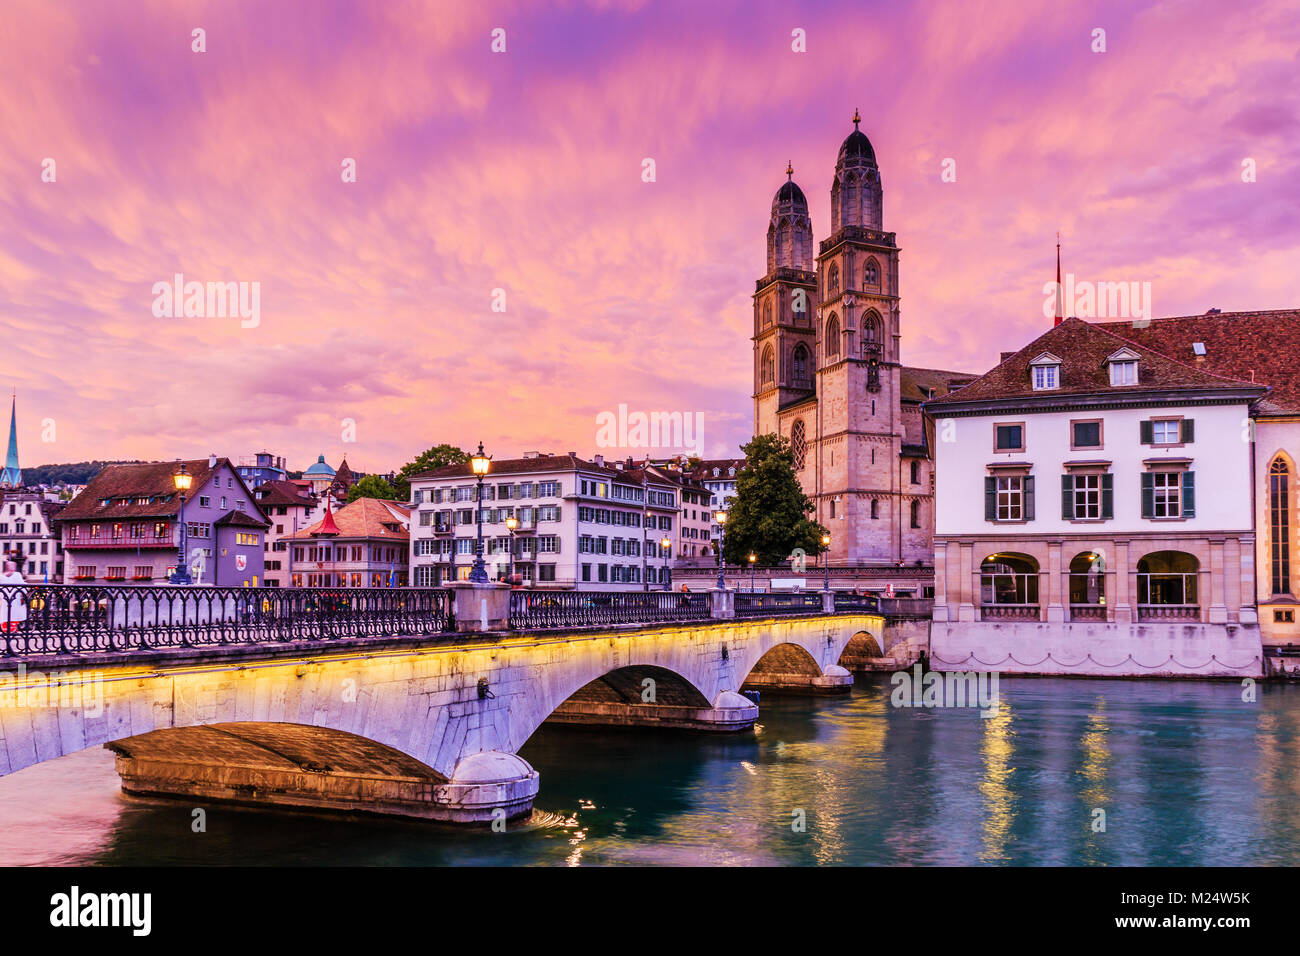 Zurich, Switzerland.  View of historic city center of Zurich with famous Fraumunster Church and Munsterbucke crossing - Stock Image